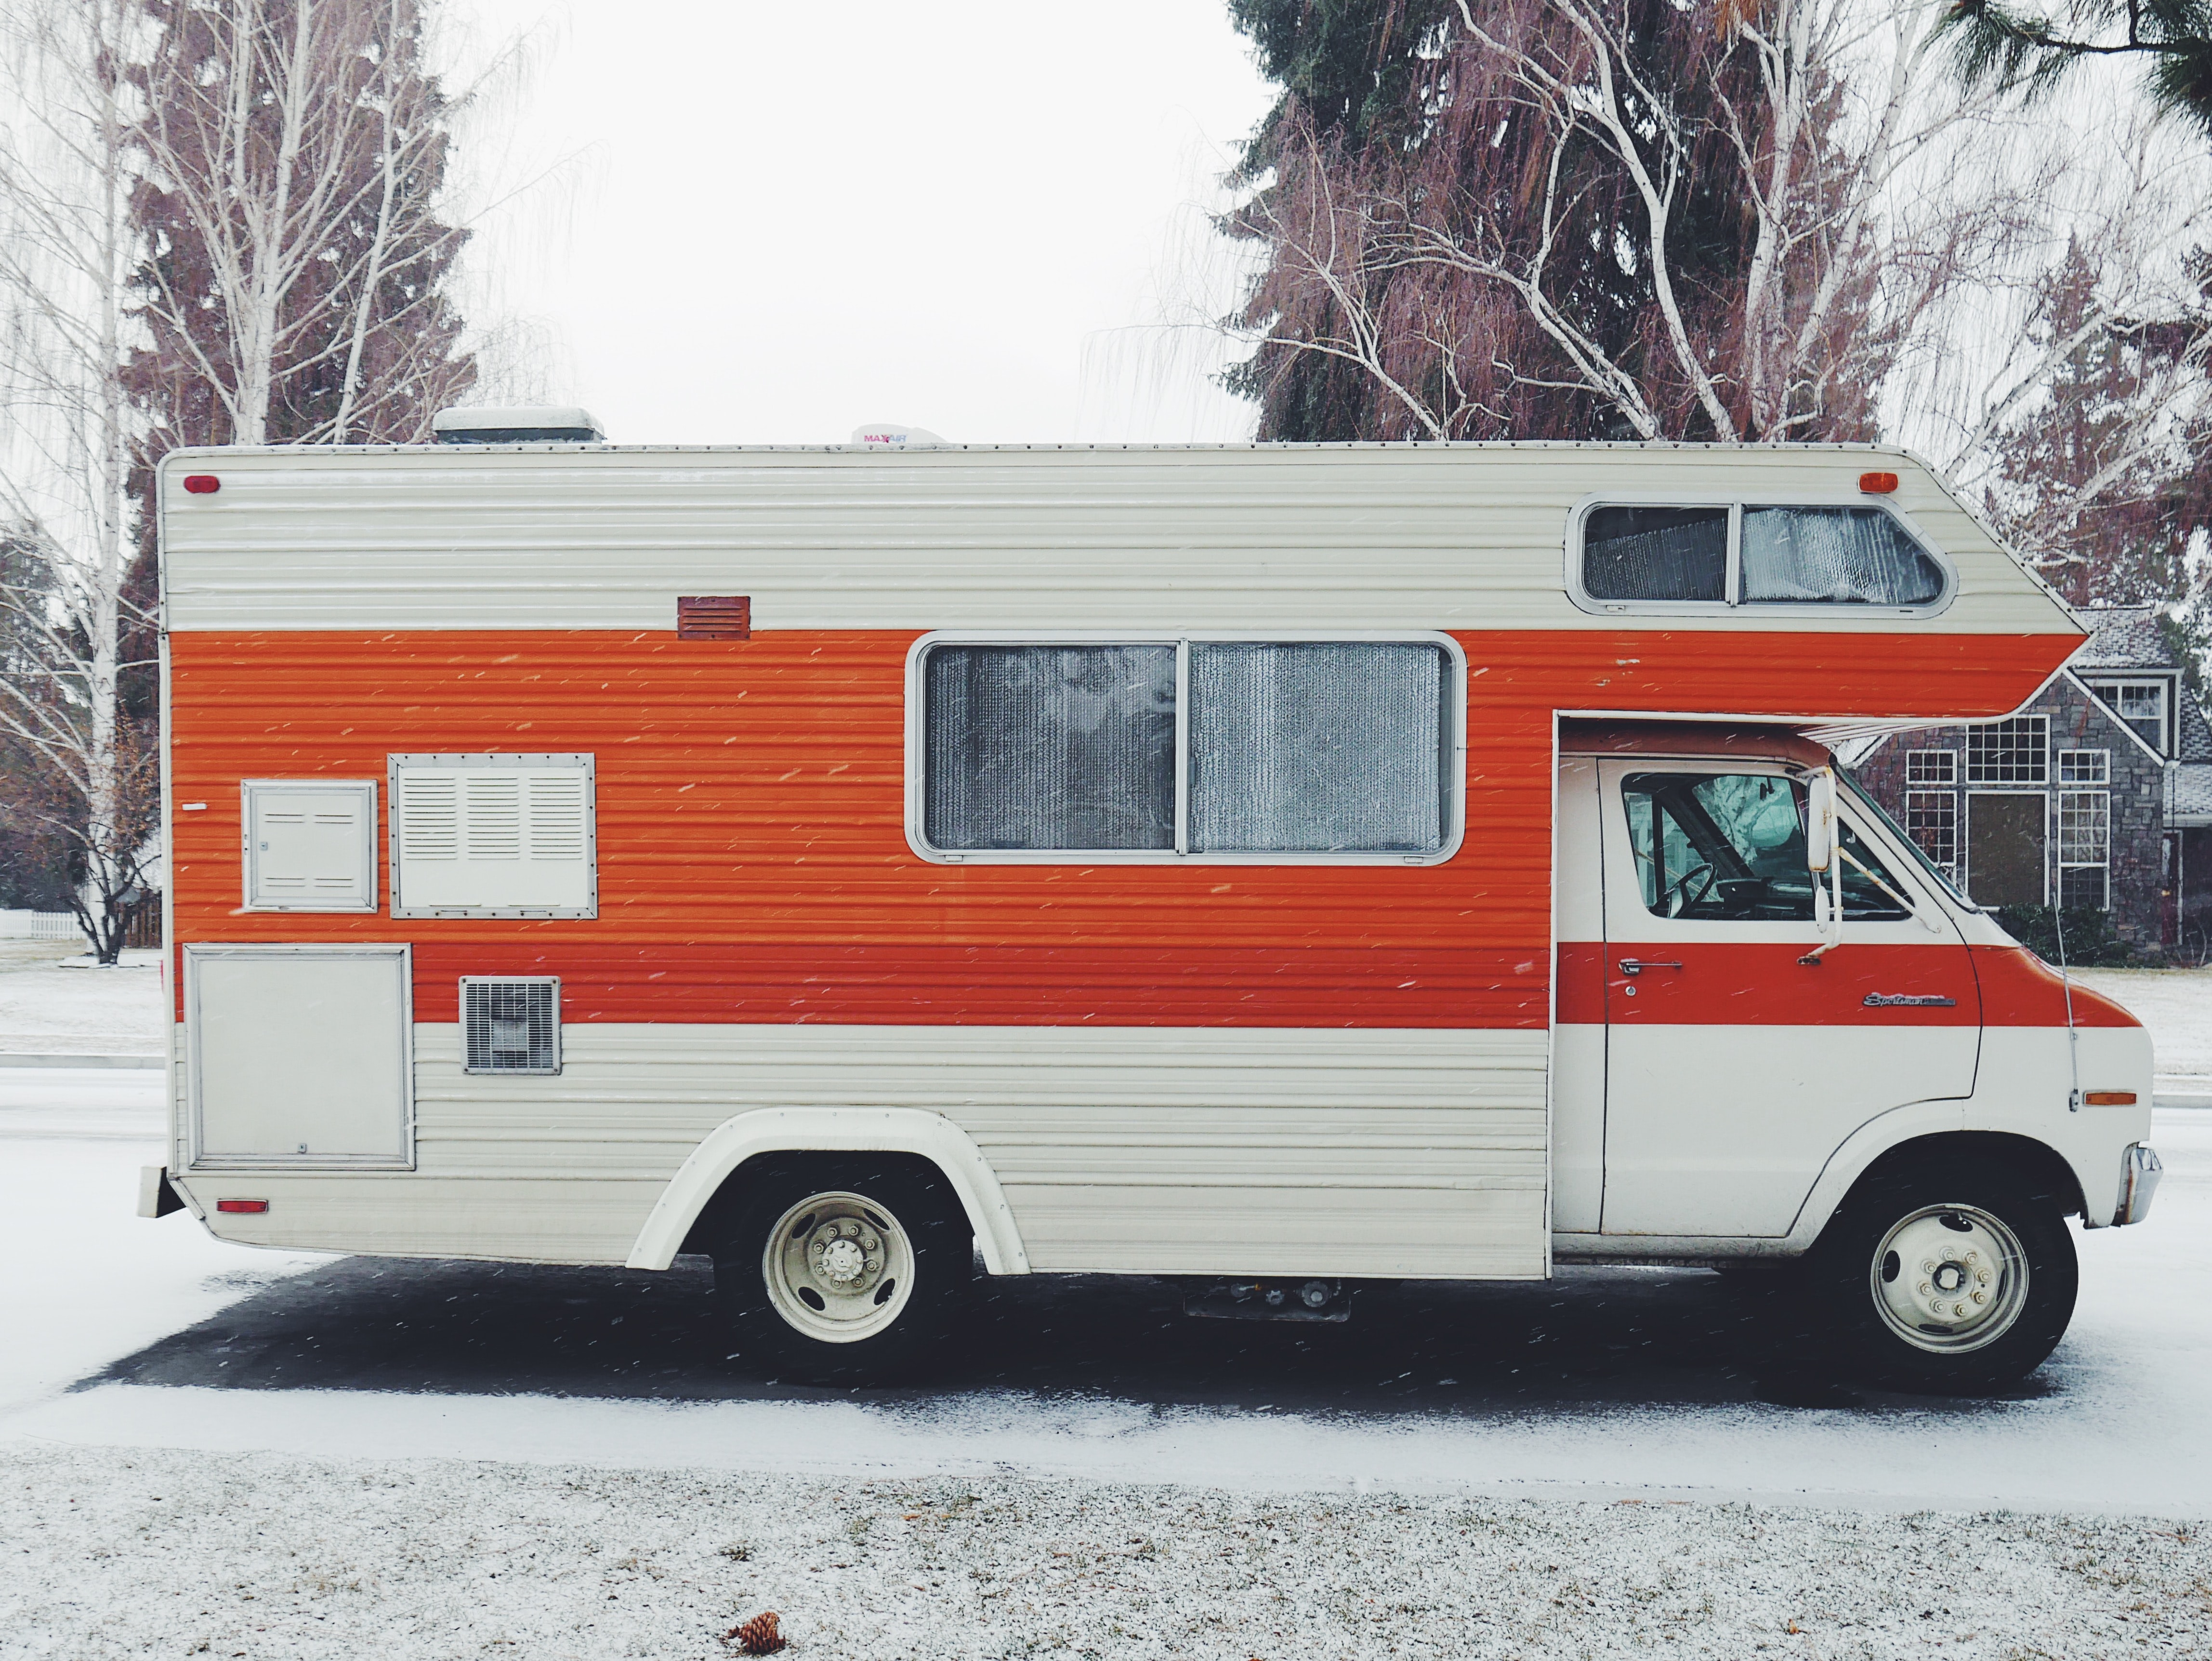 orange and white class-a motorhome surrounded by snow